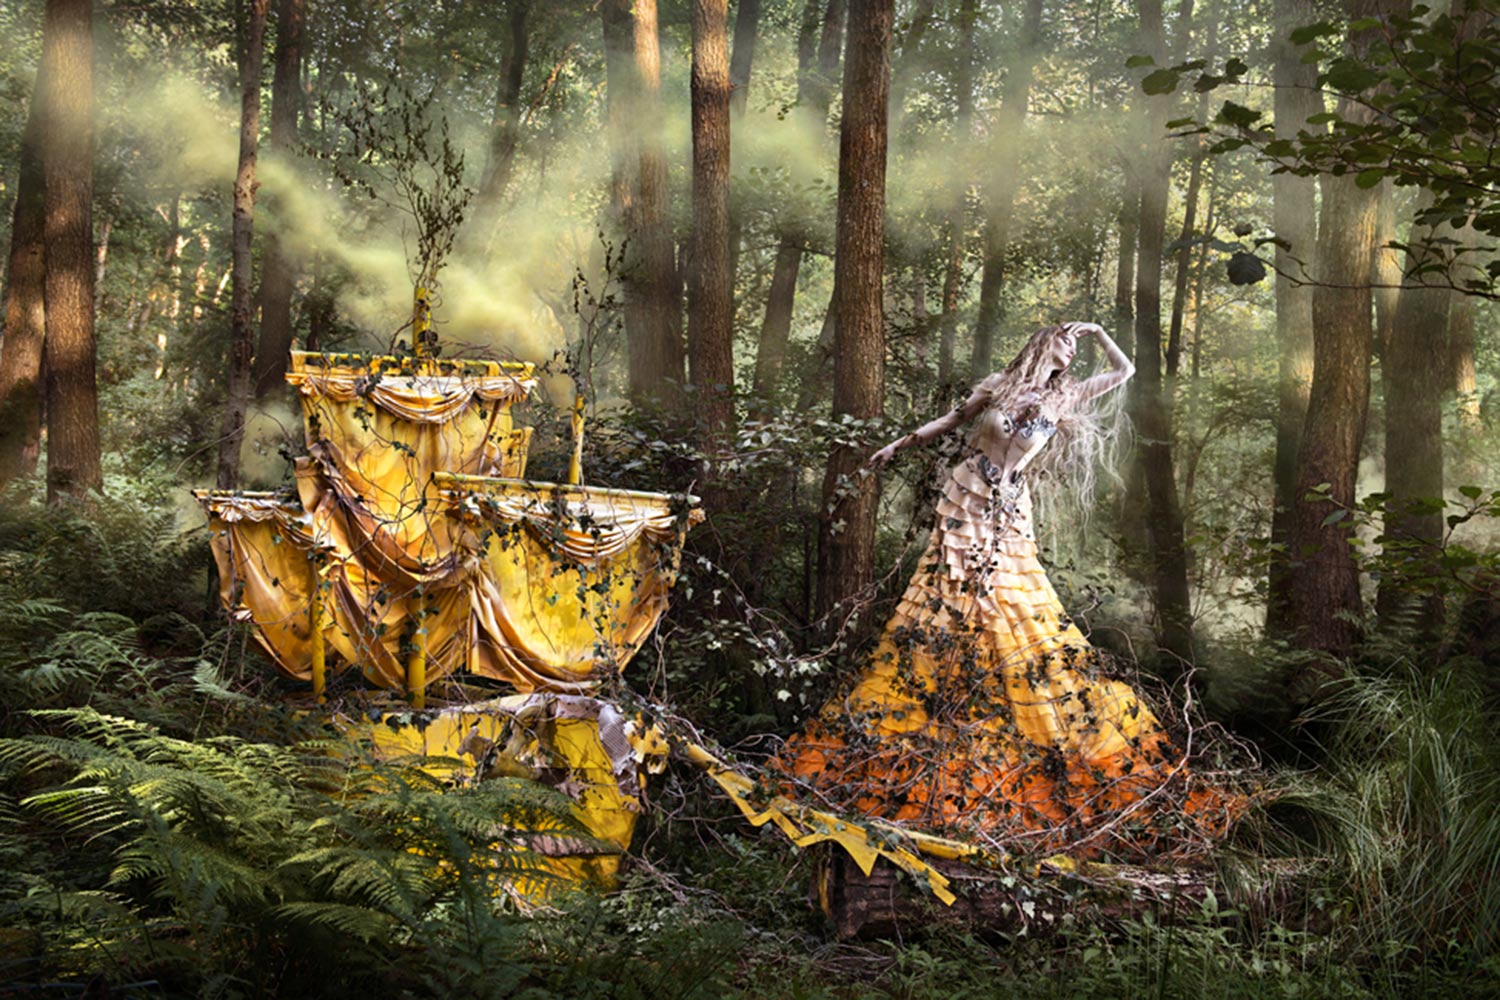 Shell-Wait-For-You-In-The-Shadows-Of-Summer-Kirsty Mitchell